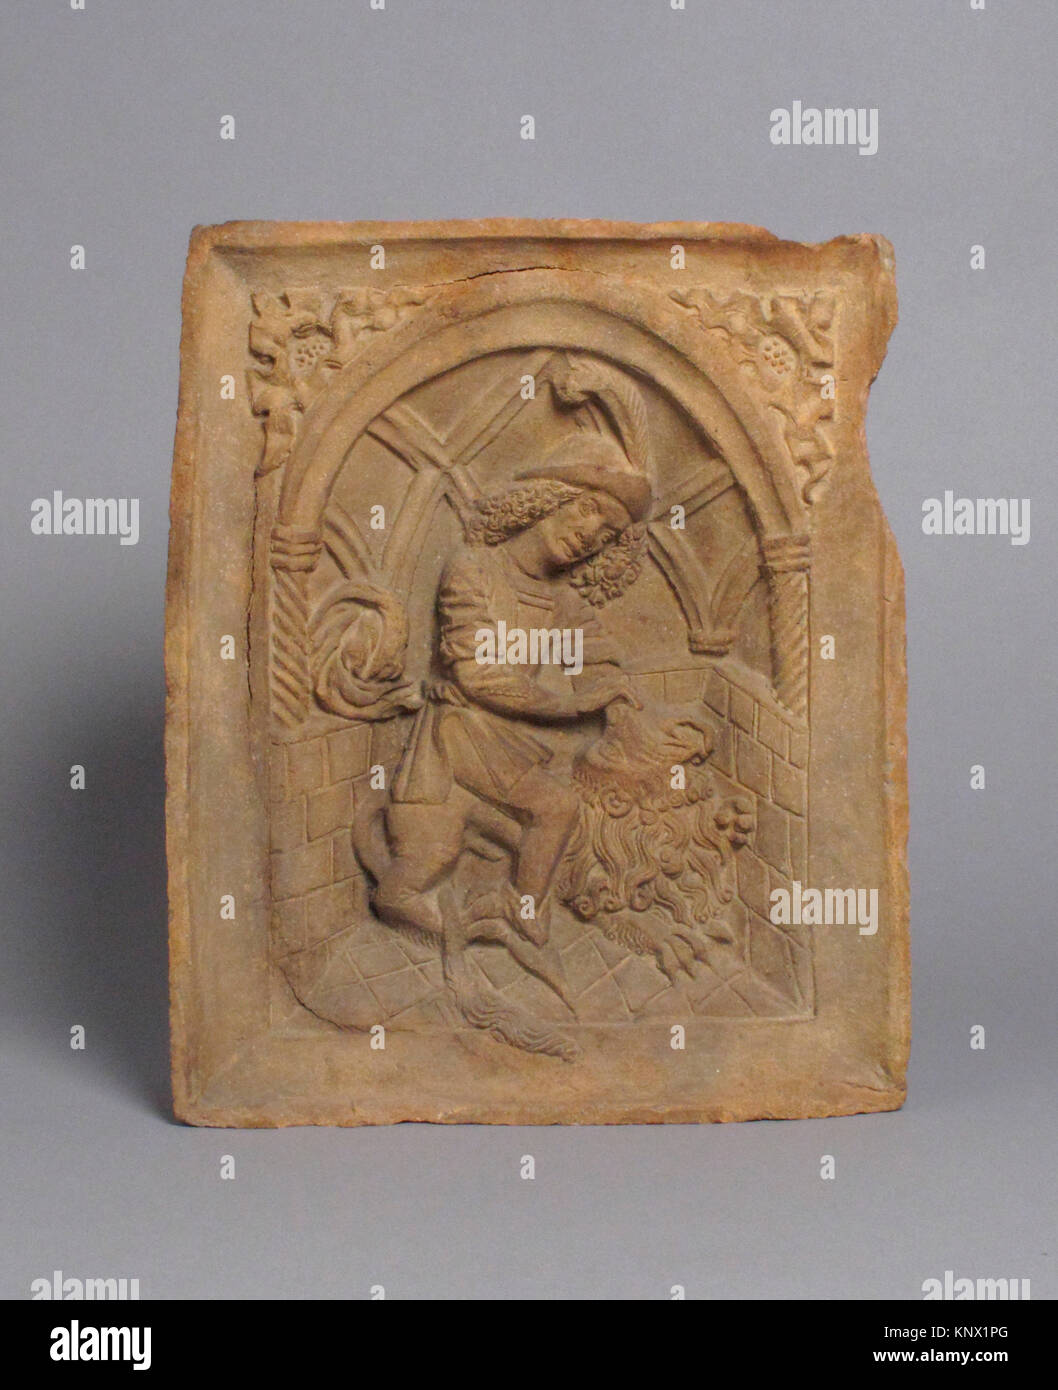 Oven Tile with Samson and the Lion (Based on an Engraving by Master E.S.). Date: ca. 1490; Geography: Made in probably - Stock Image